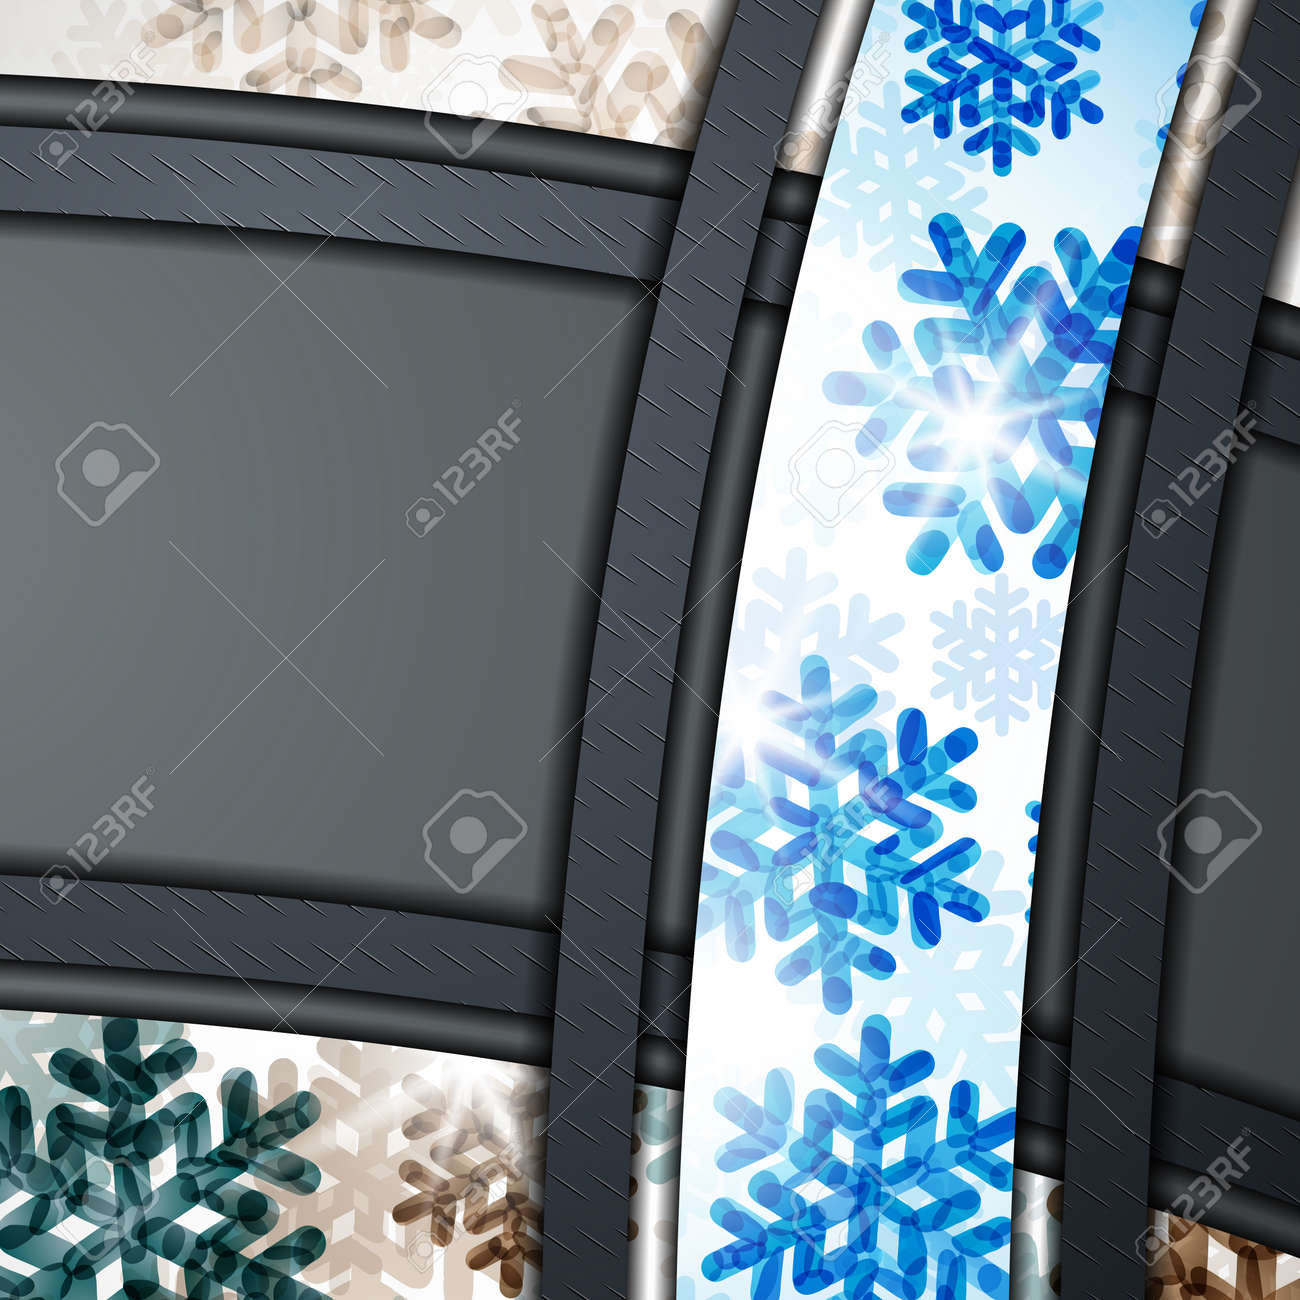 layered abstract background with snowflakes image Stock Vector - 17997896